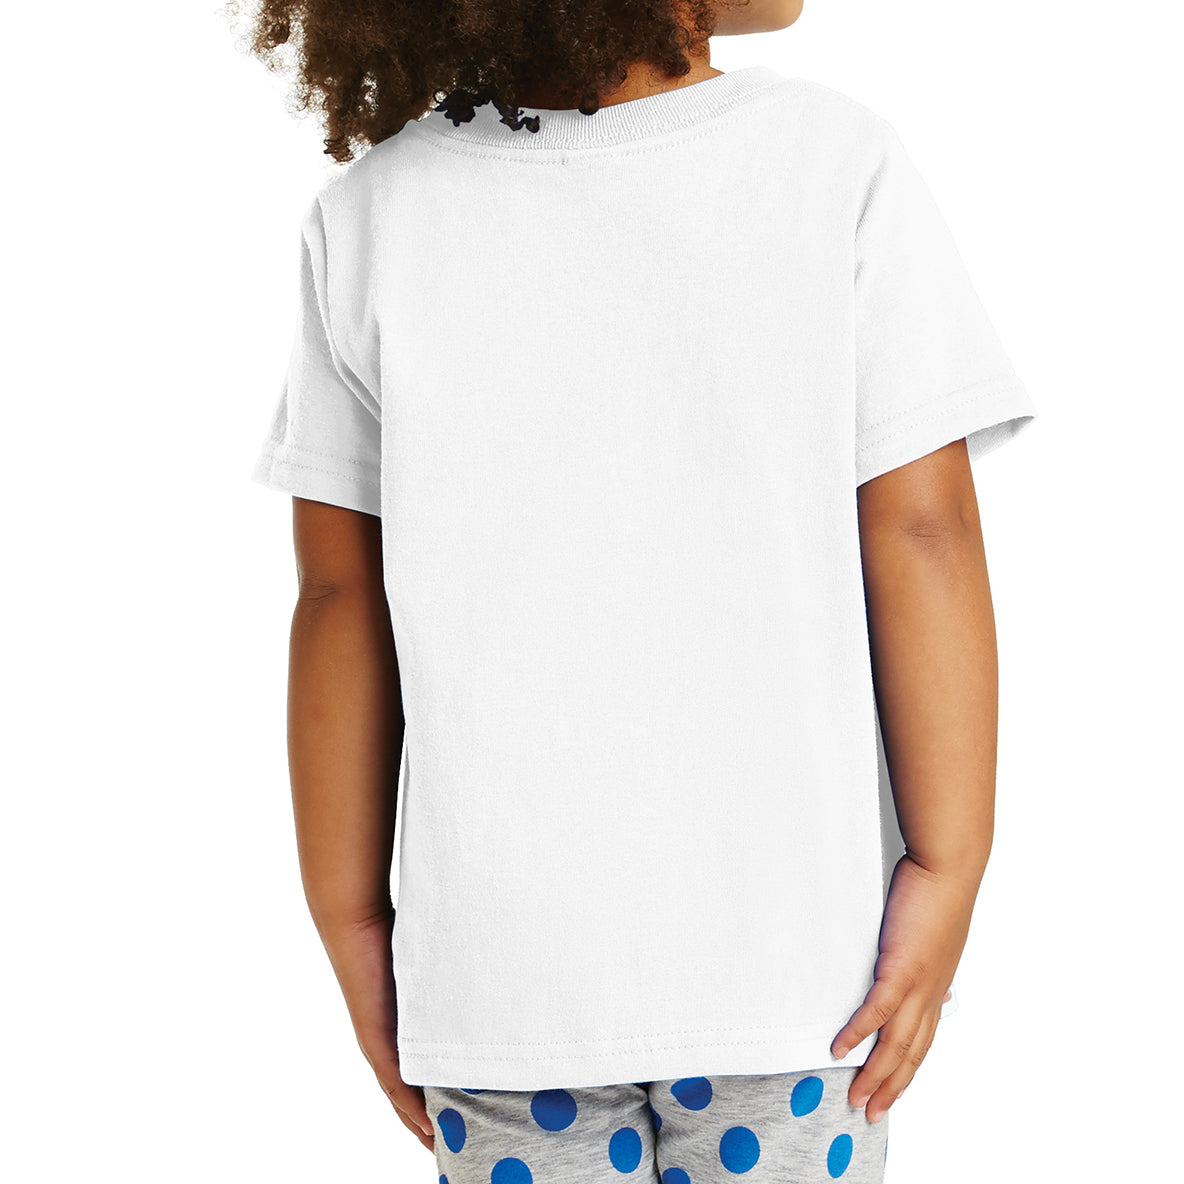 Toddler Core Cotton Tee - White